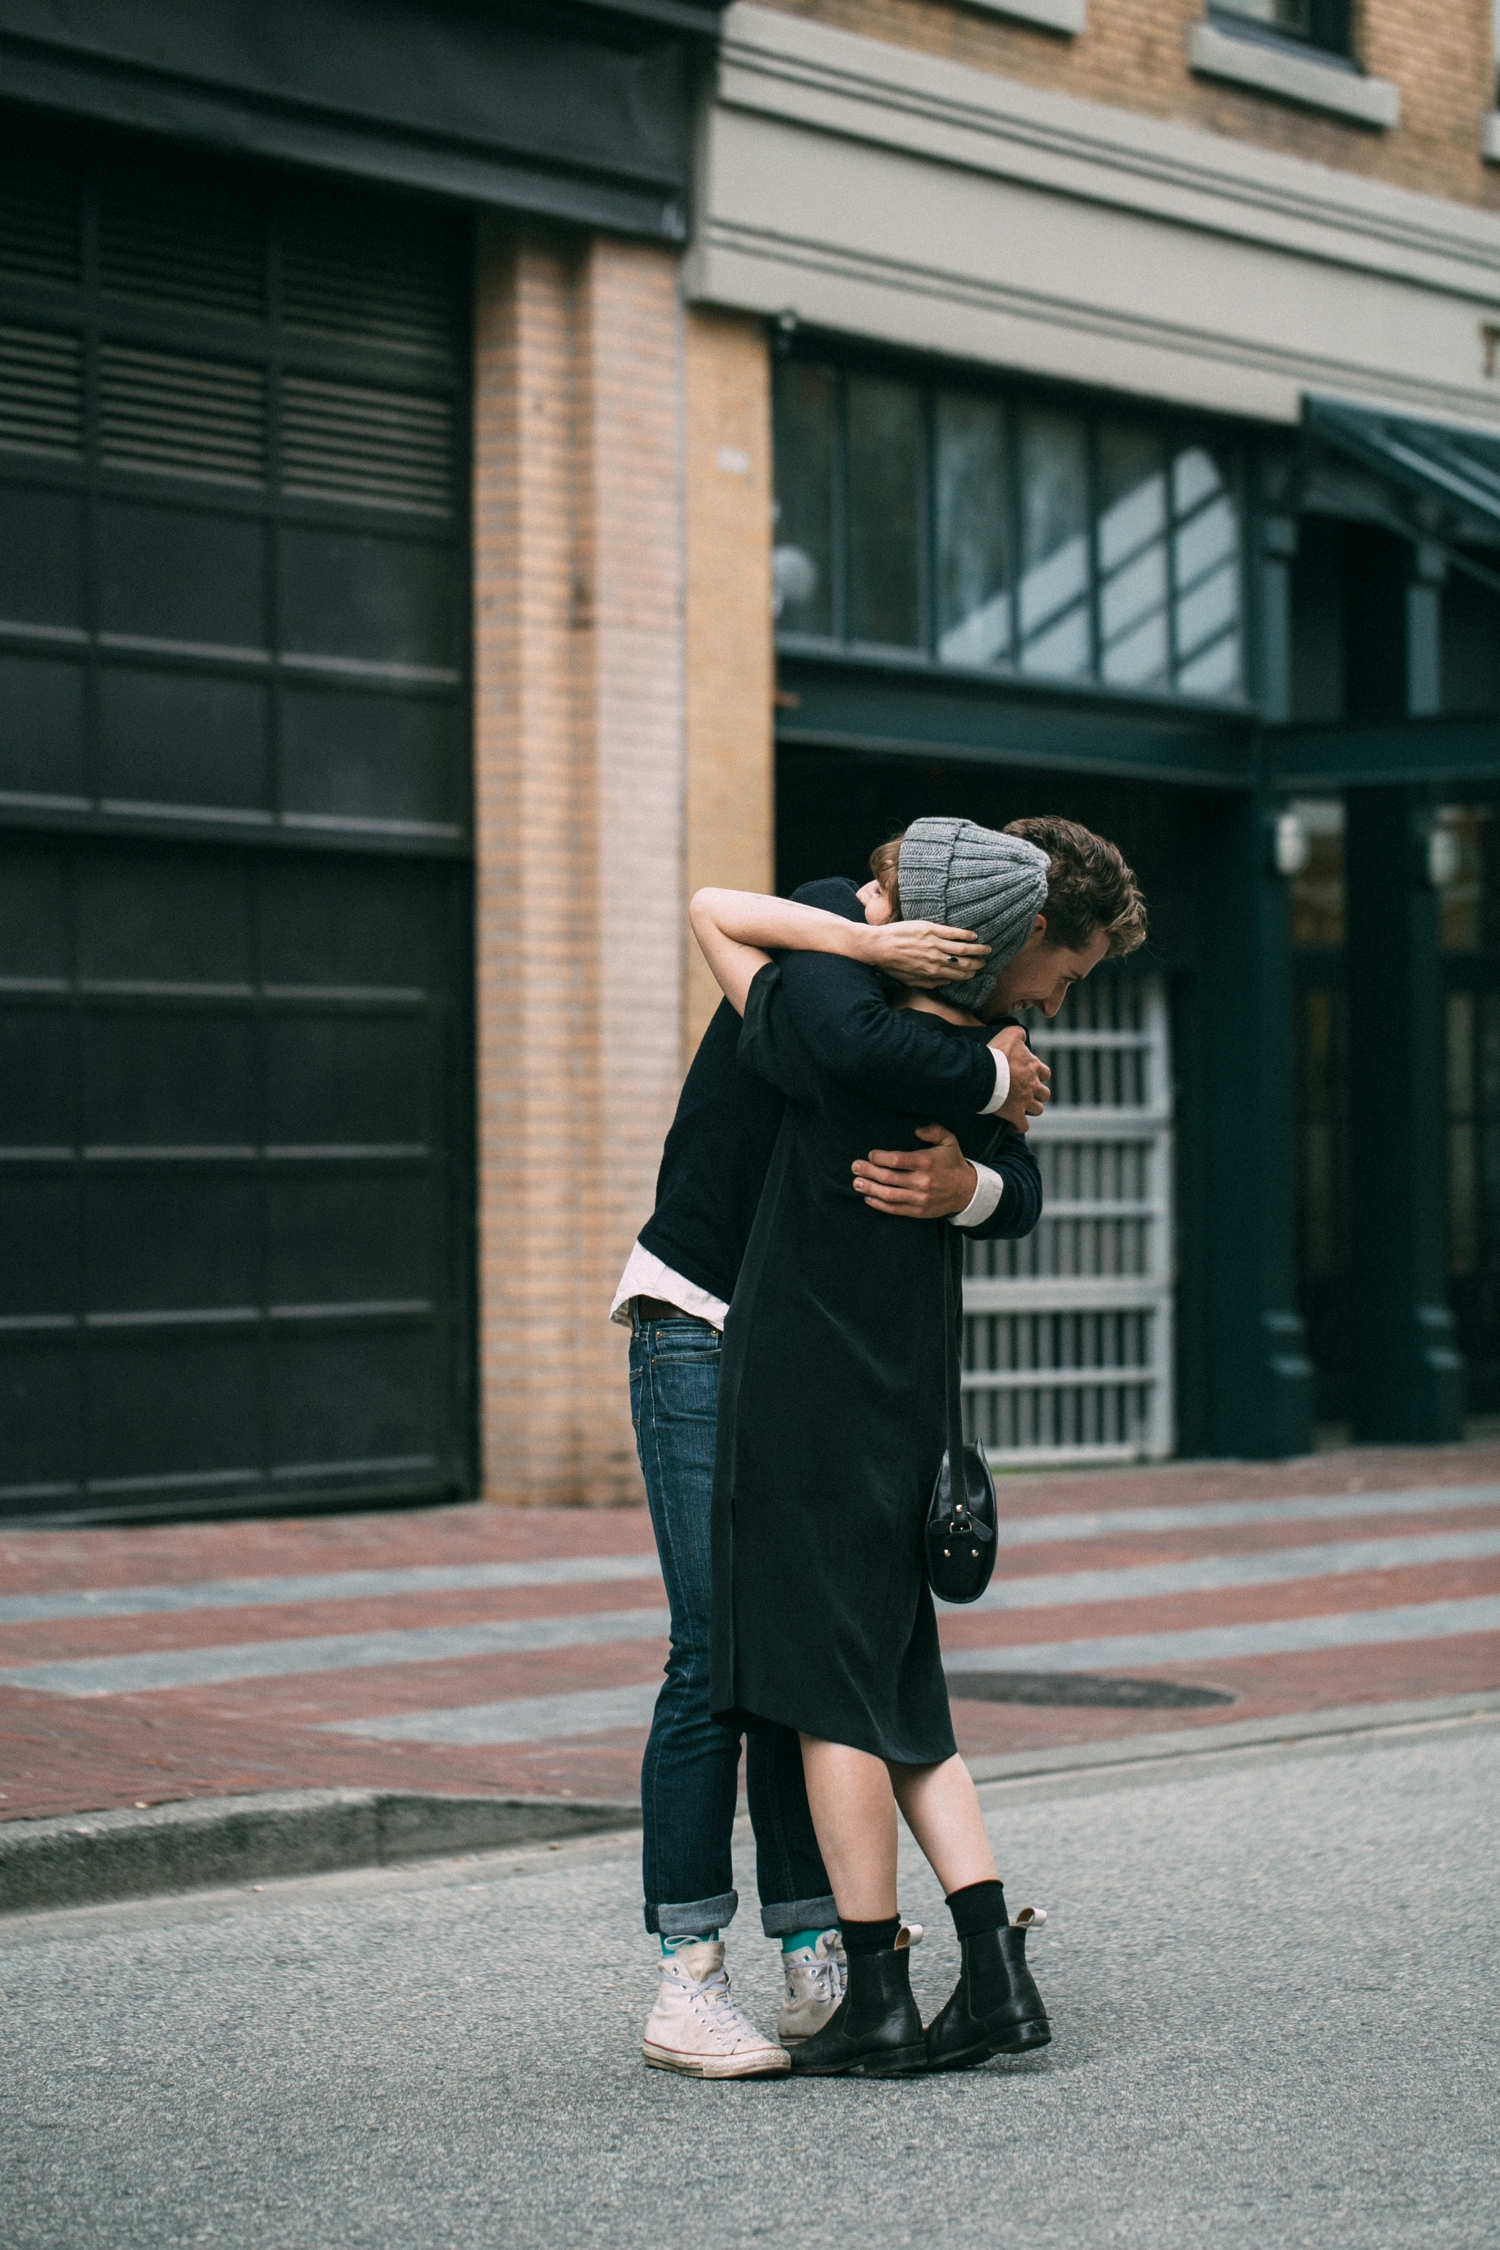 Candid moment of engaged, alternative couple hugging each other during engagement photo session in Gas Town, Vancouver.